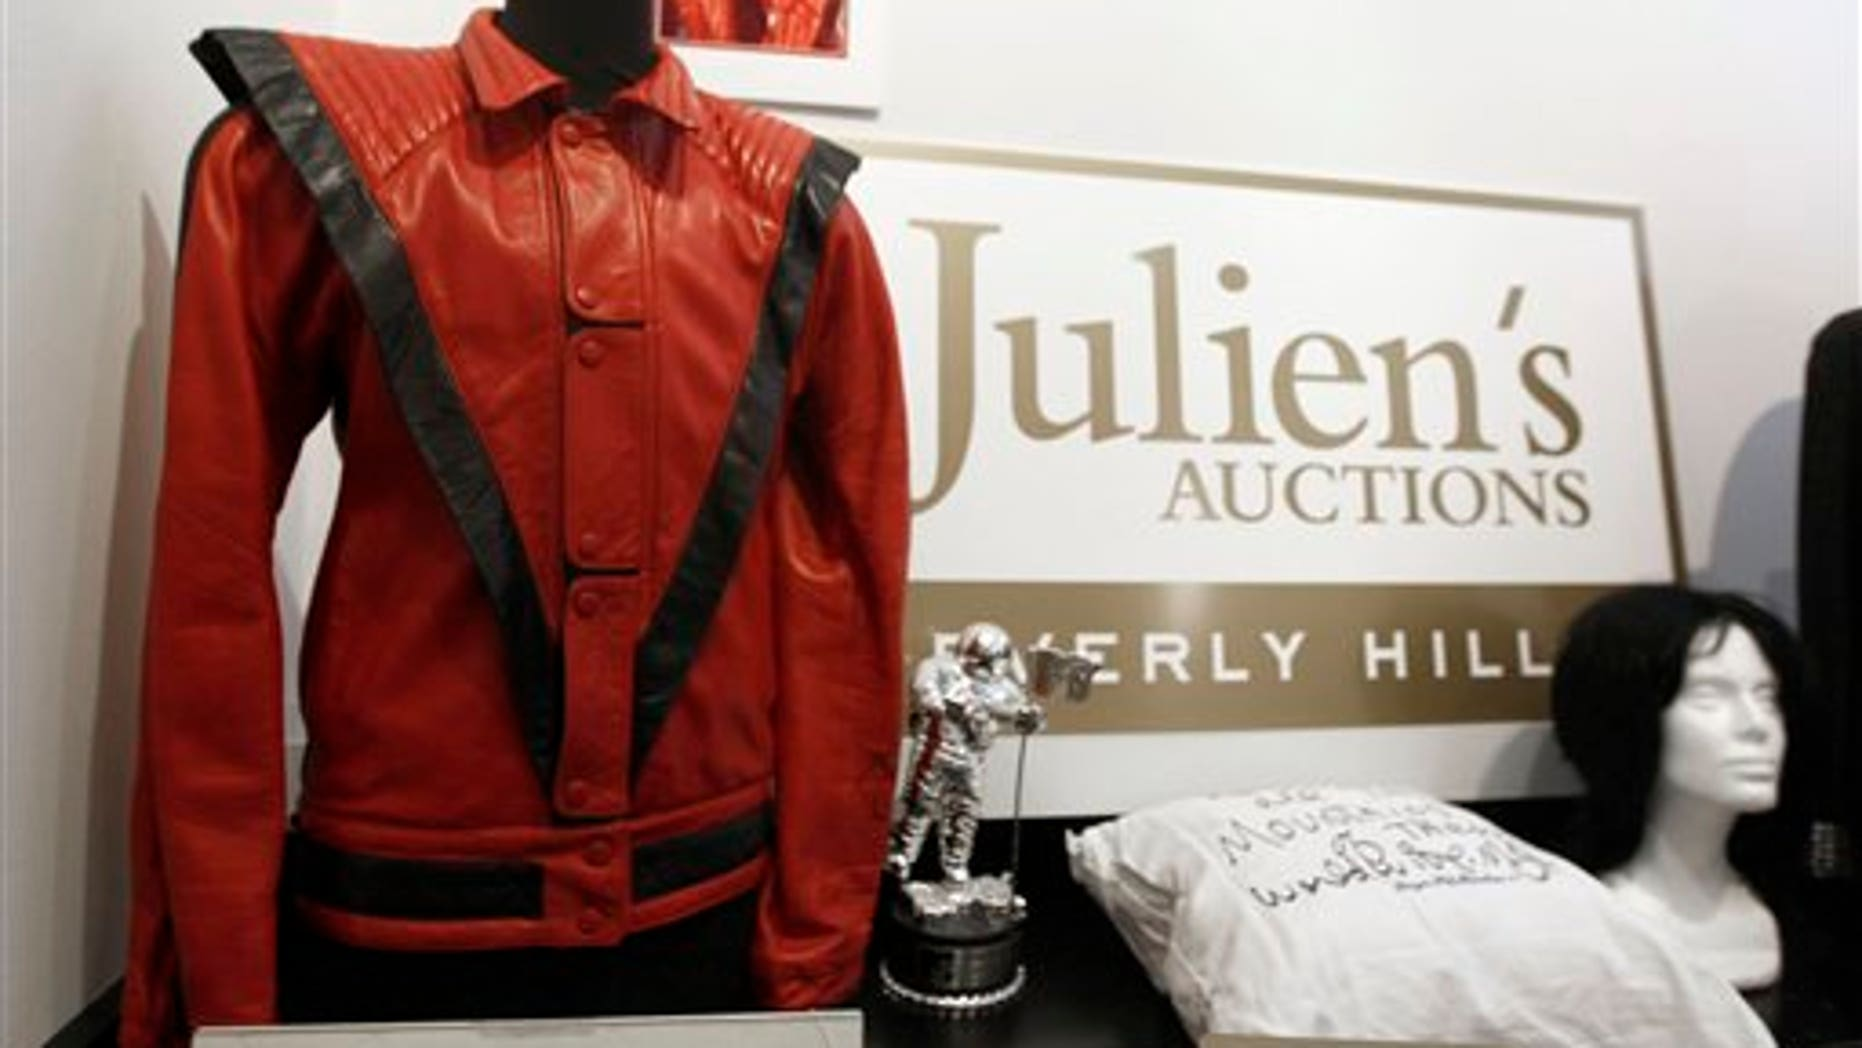 Michael Jackson's iconic 'Thriller' jacket is up for auction. (AP)